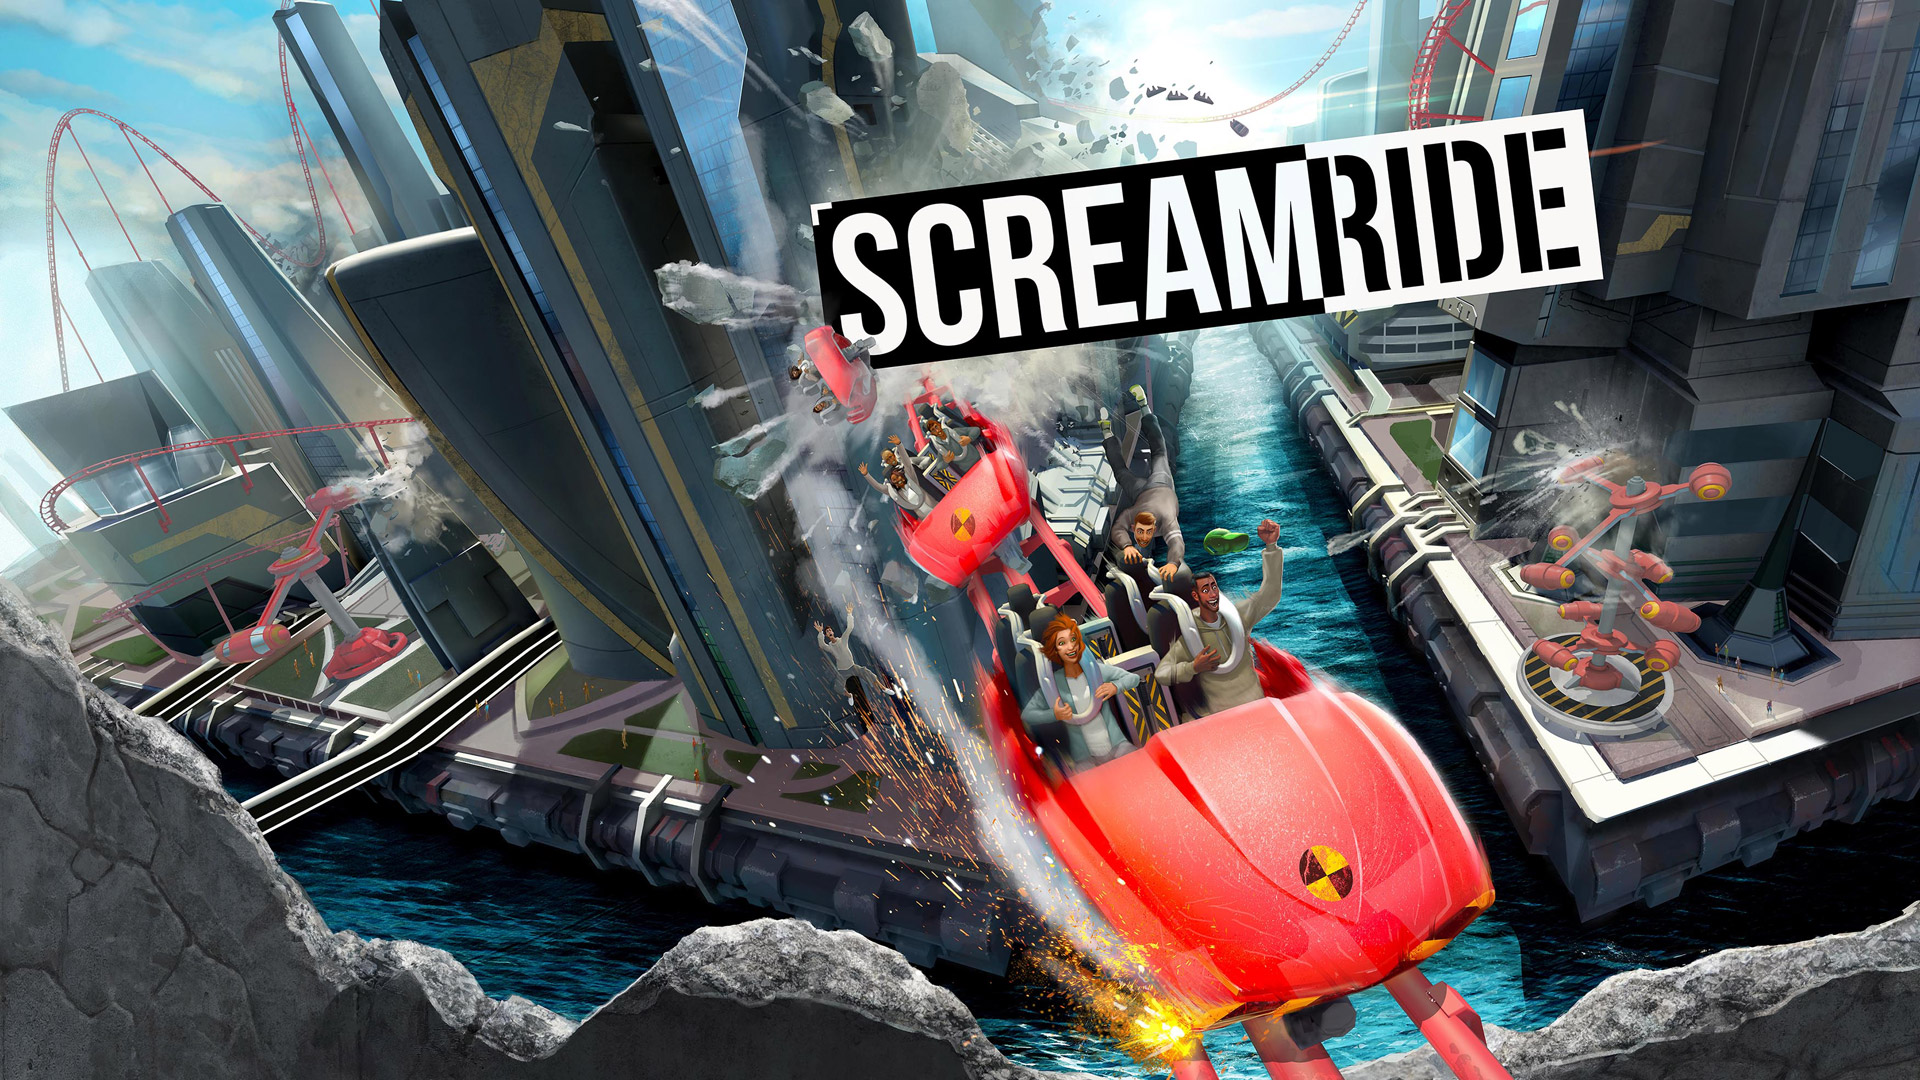 ScreamRide Wallpaper in 1920x1080